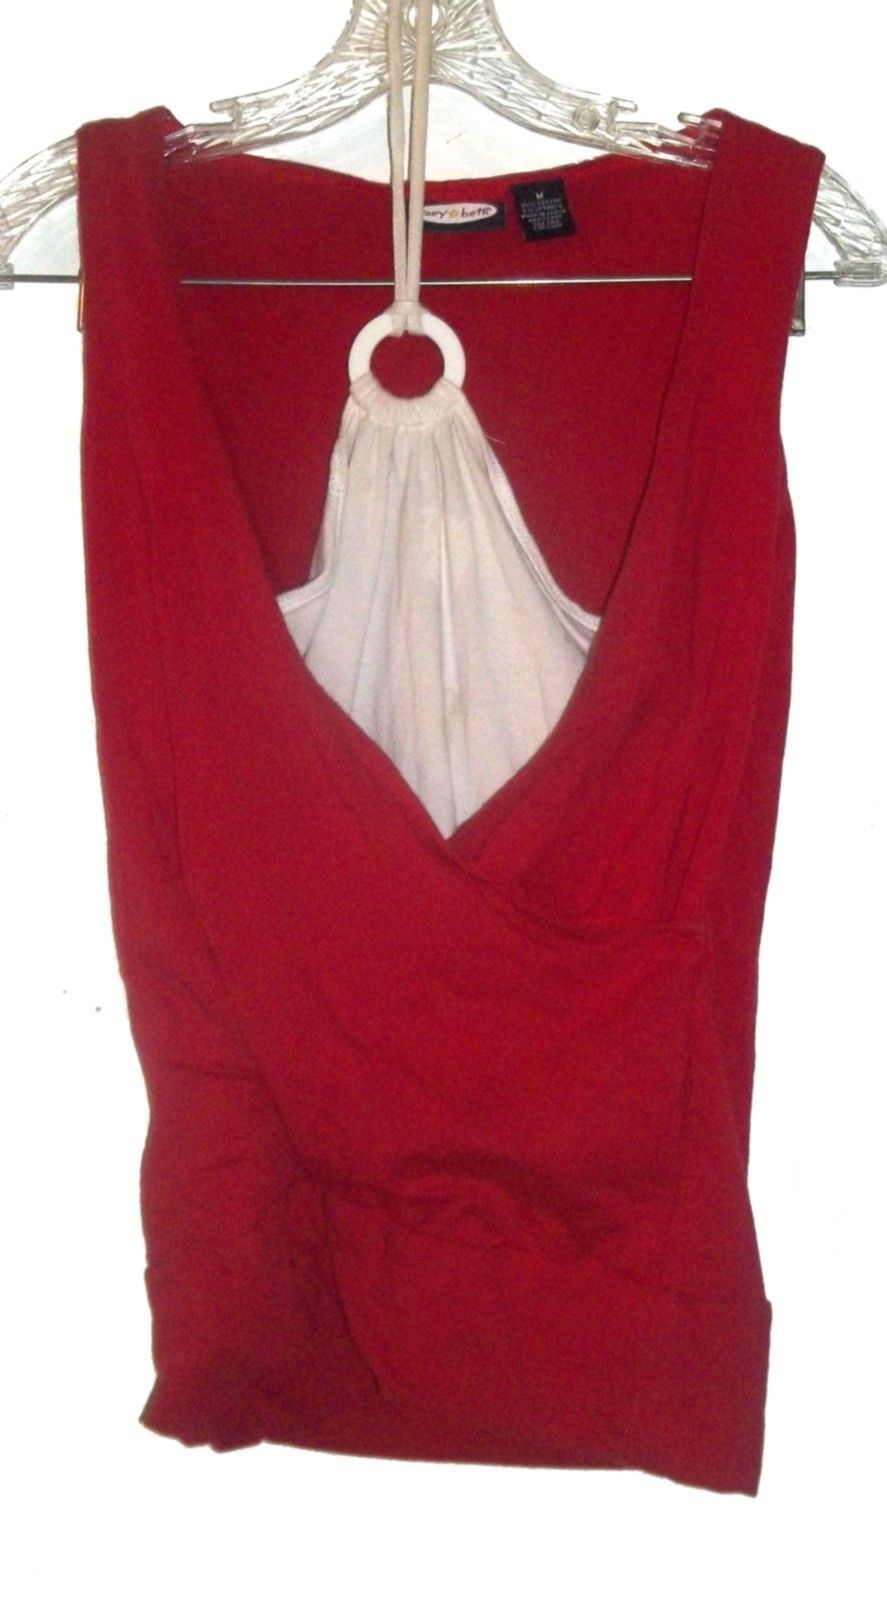 Primary image for Size M - Zoey Beth Red Tank Top w/White Halter Insert